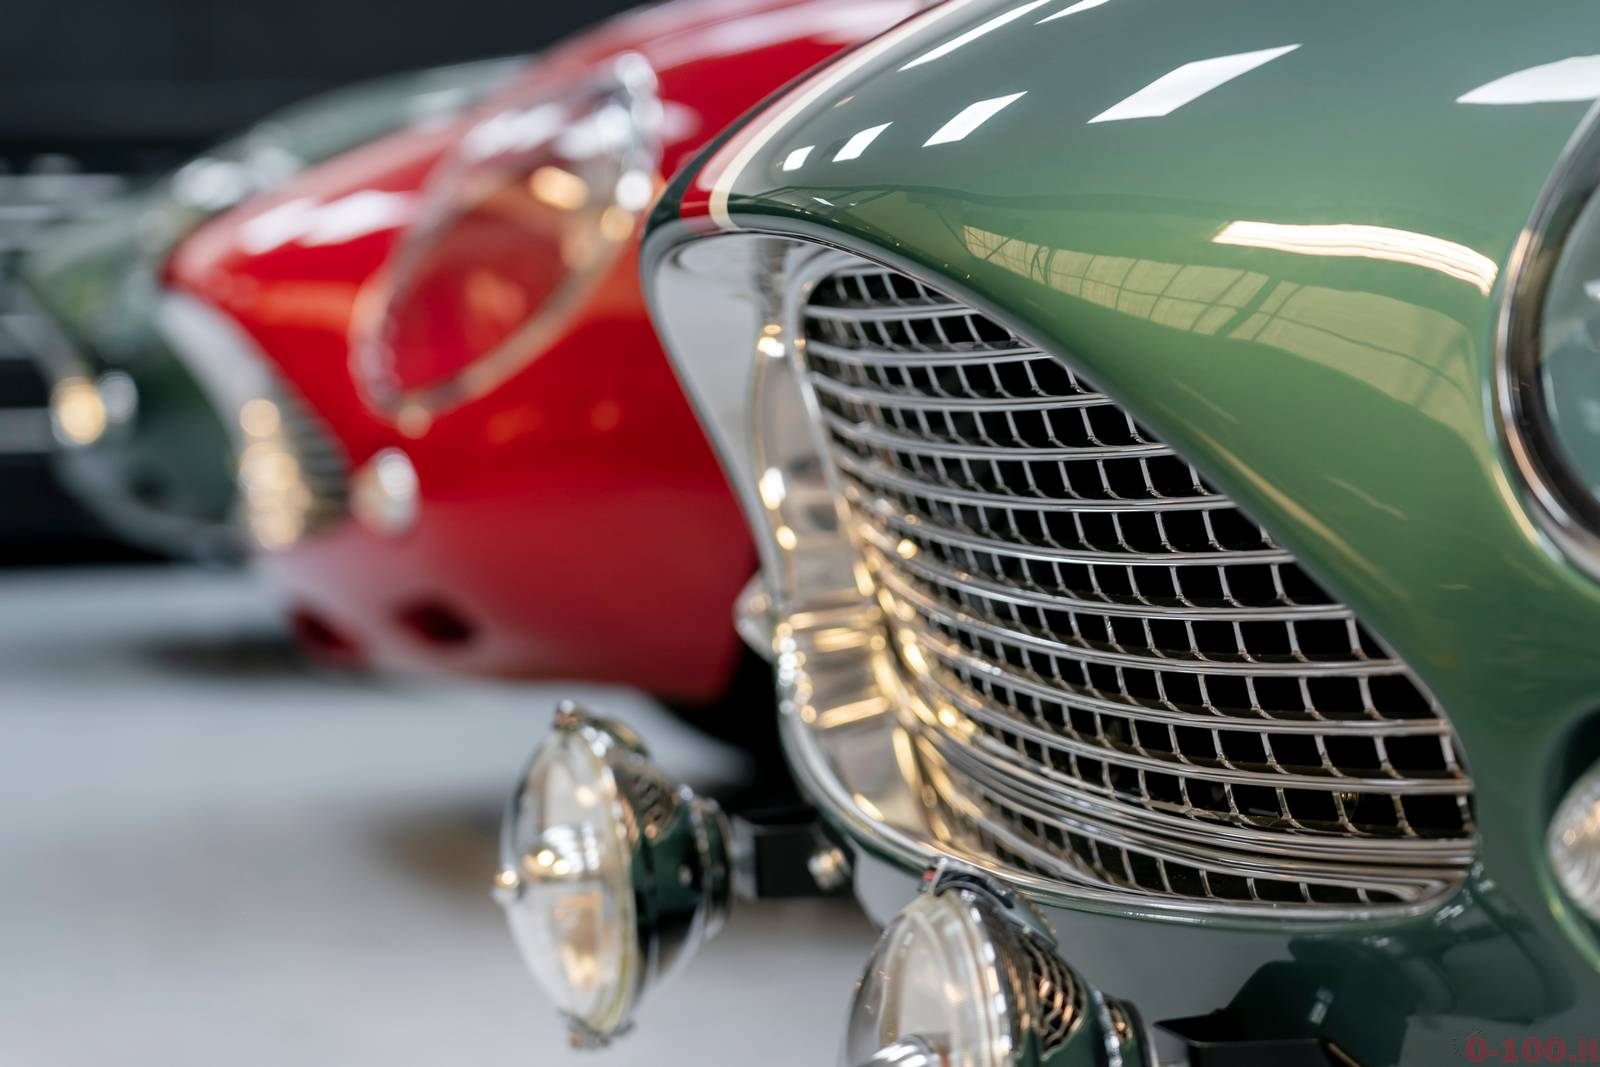 martin_db4_gtz_sanction_3_zagato_centenary_collection_0-100_21